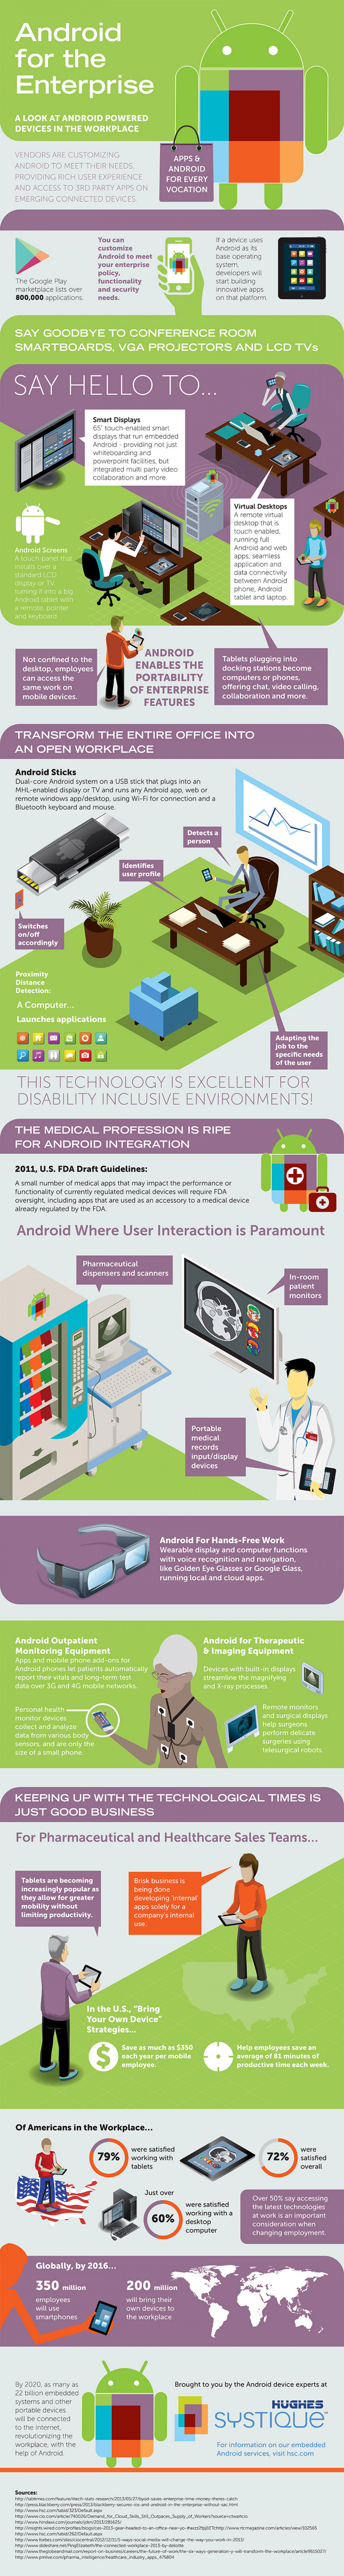 The Android-Powered Workplace Infographic